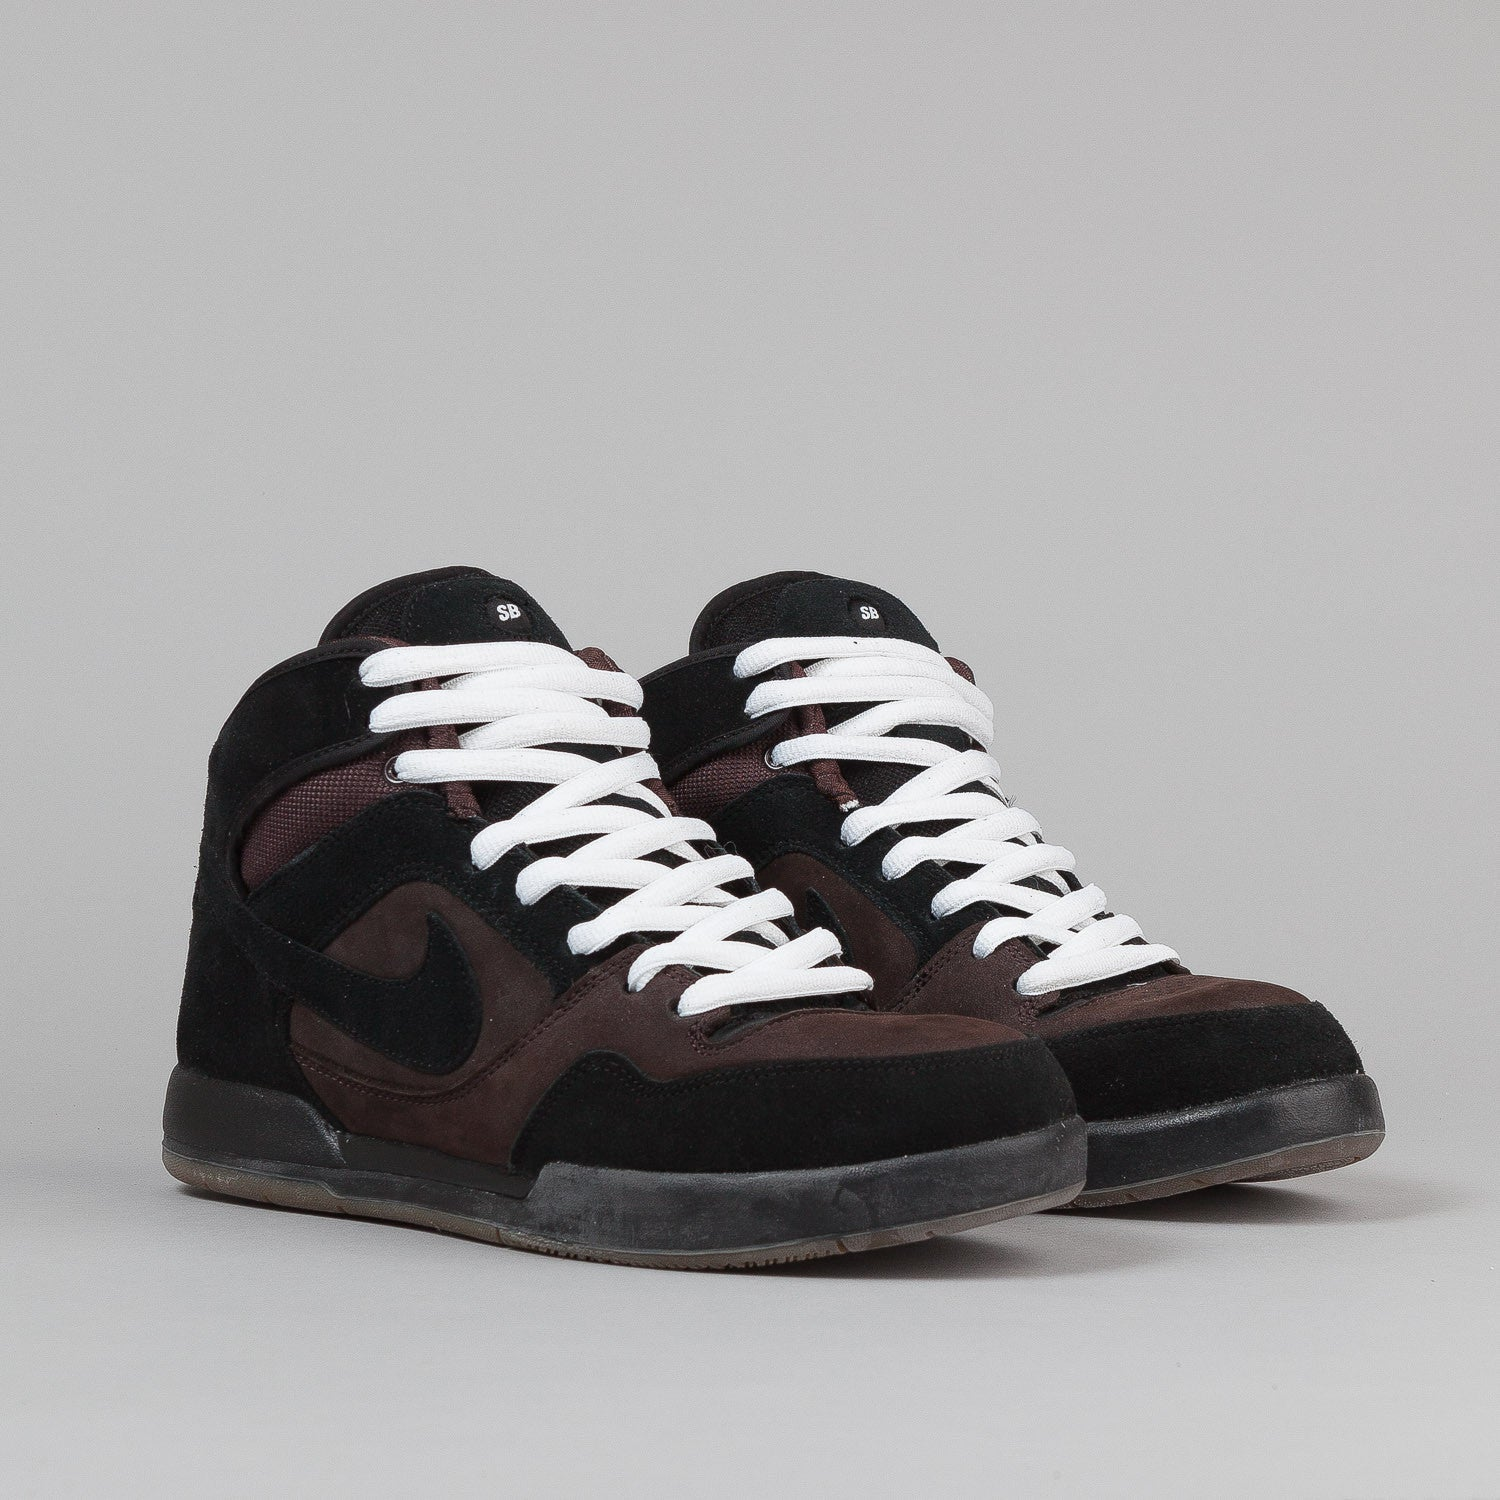 Nike SB Paul Rodriguez 2 High Shoes - Cappuccino / Black